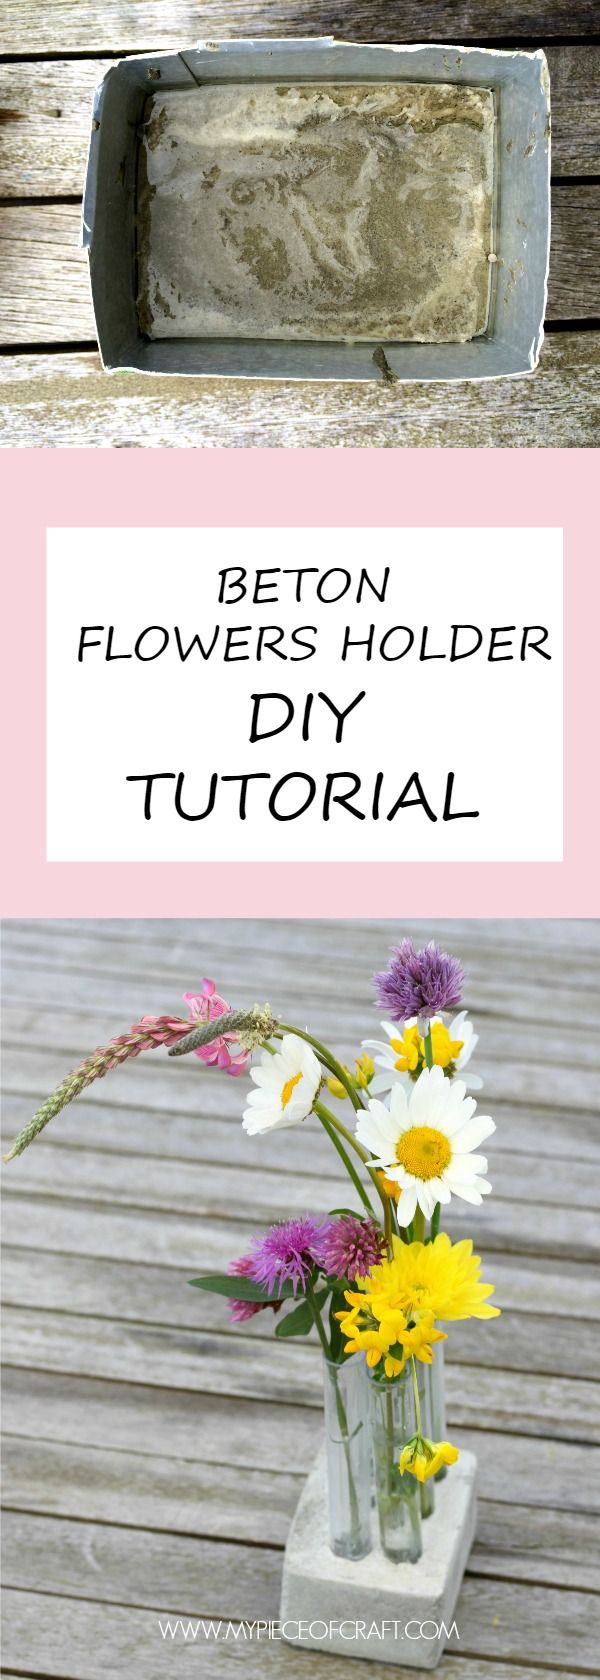 A step-by-step tutorial to make easy & beautiful flowers holder made of beton (concrete)